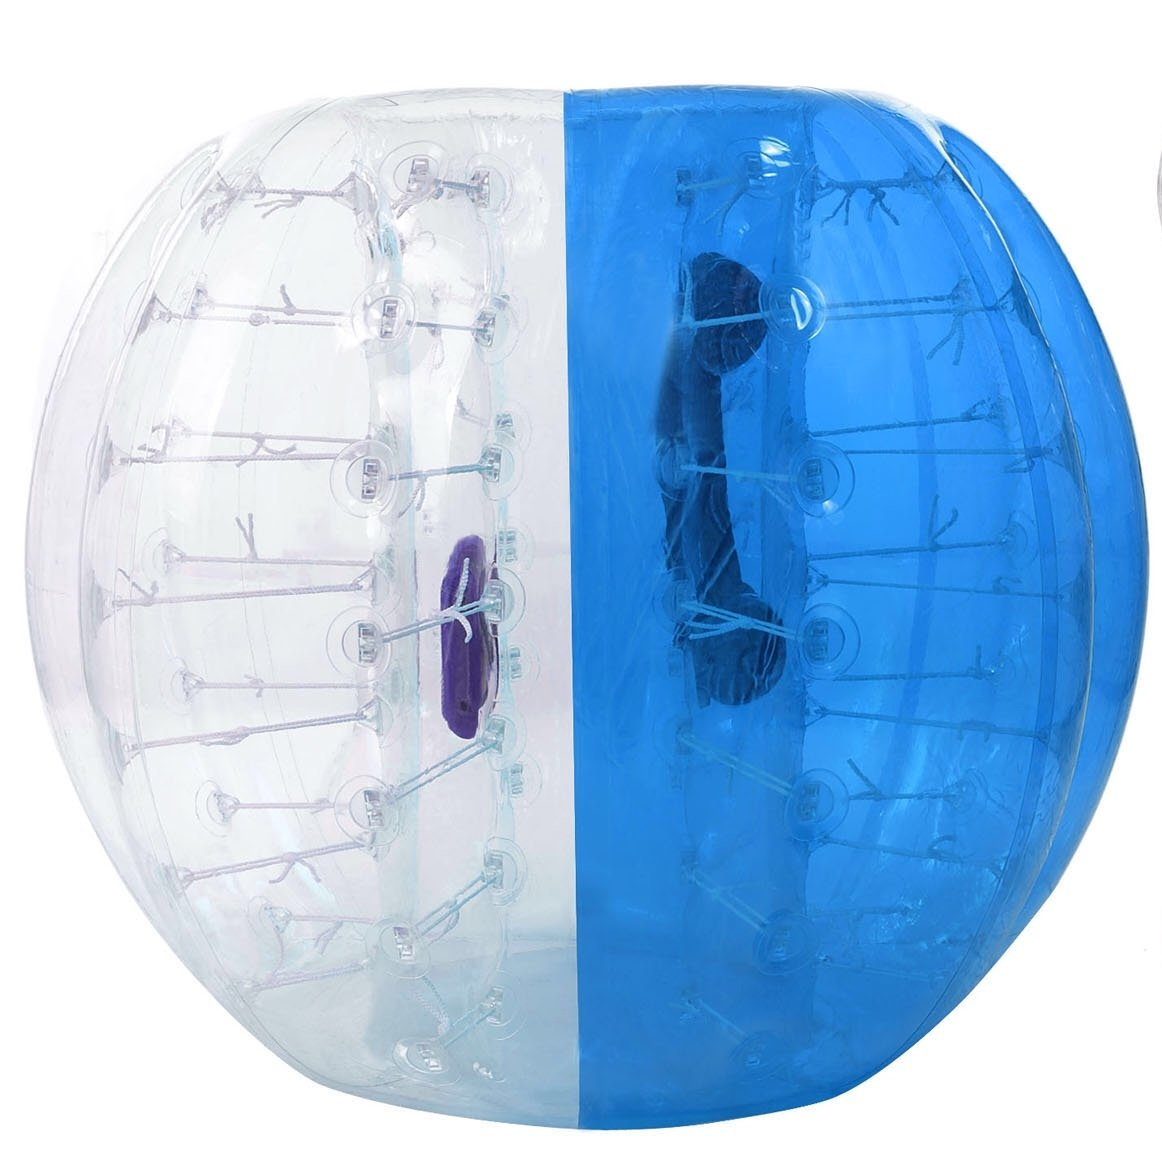 Oanon Inflatable Bumper Ball 1.2M 4FT/1.5M 5FT Diameter Bubble Soccer Ball Blow Up Toy, Inflatable Bumper Bubble Balls for Childs,Teens,Adults (White/Blue 1,5M)